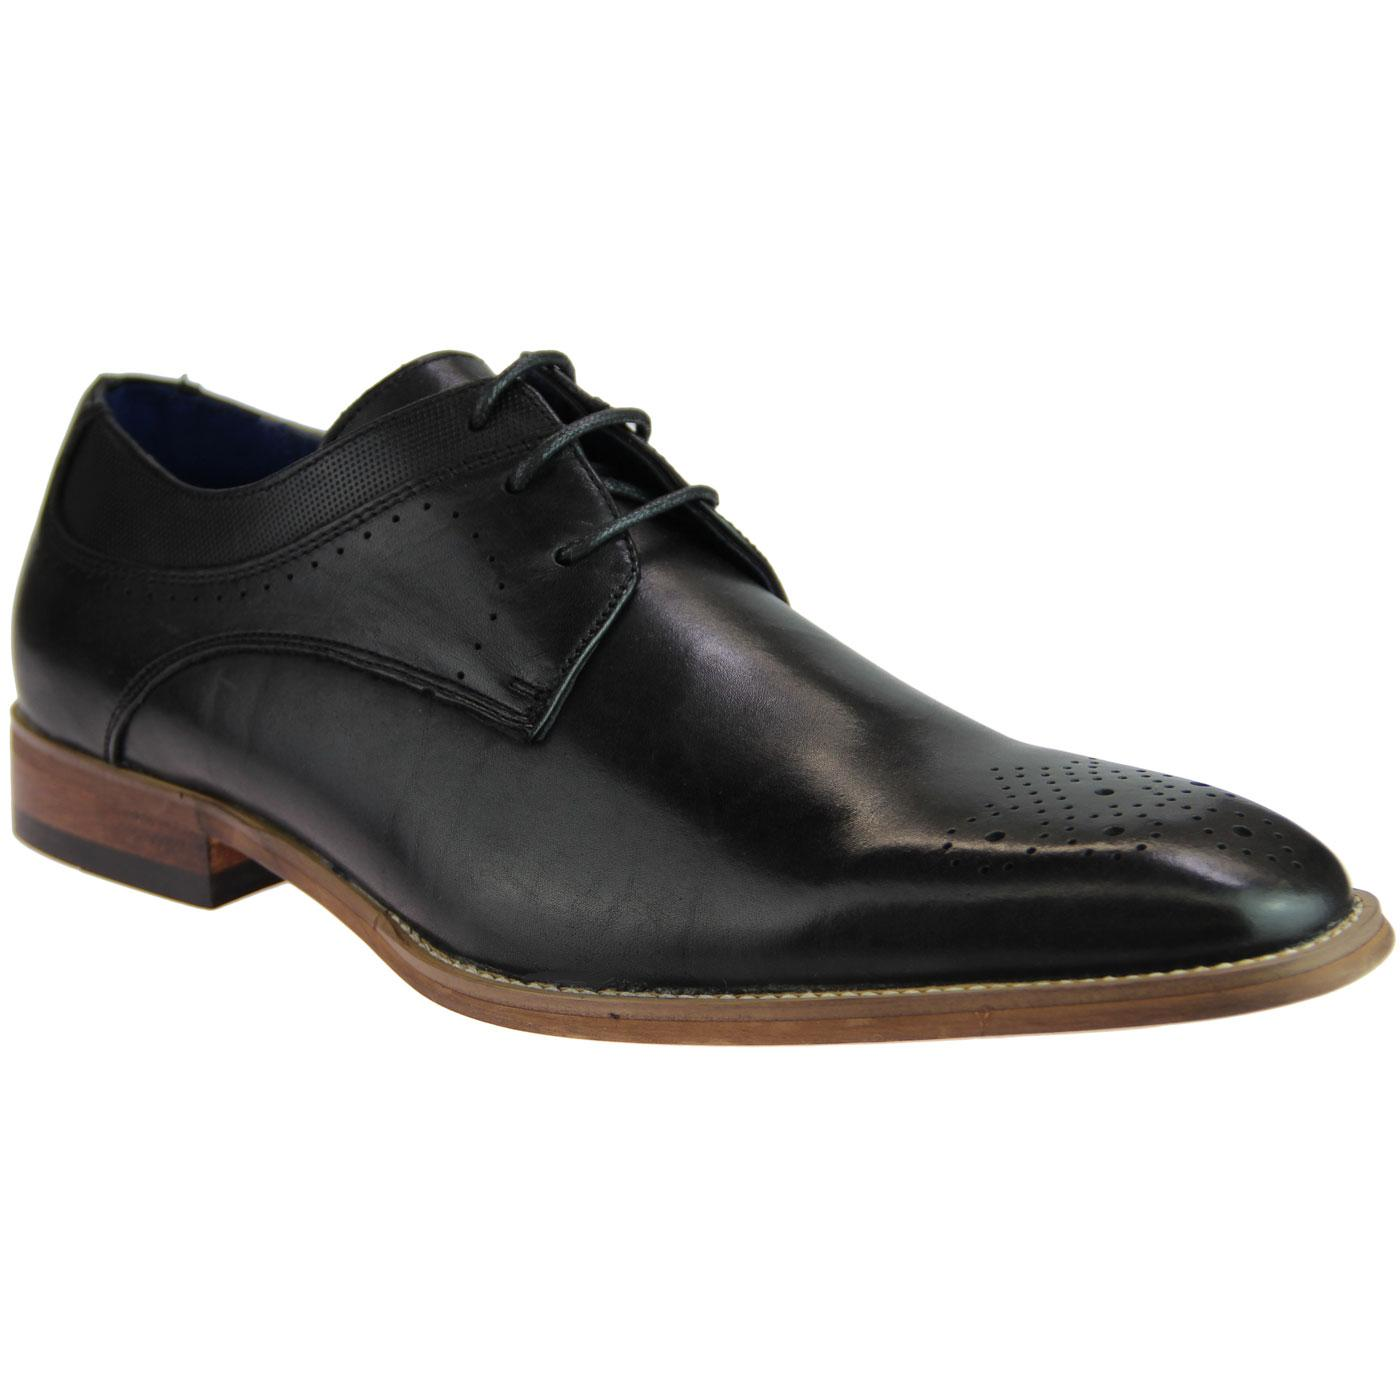 Mens Retro Mod Leather Gibson Brogue Shoes (Black)